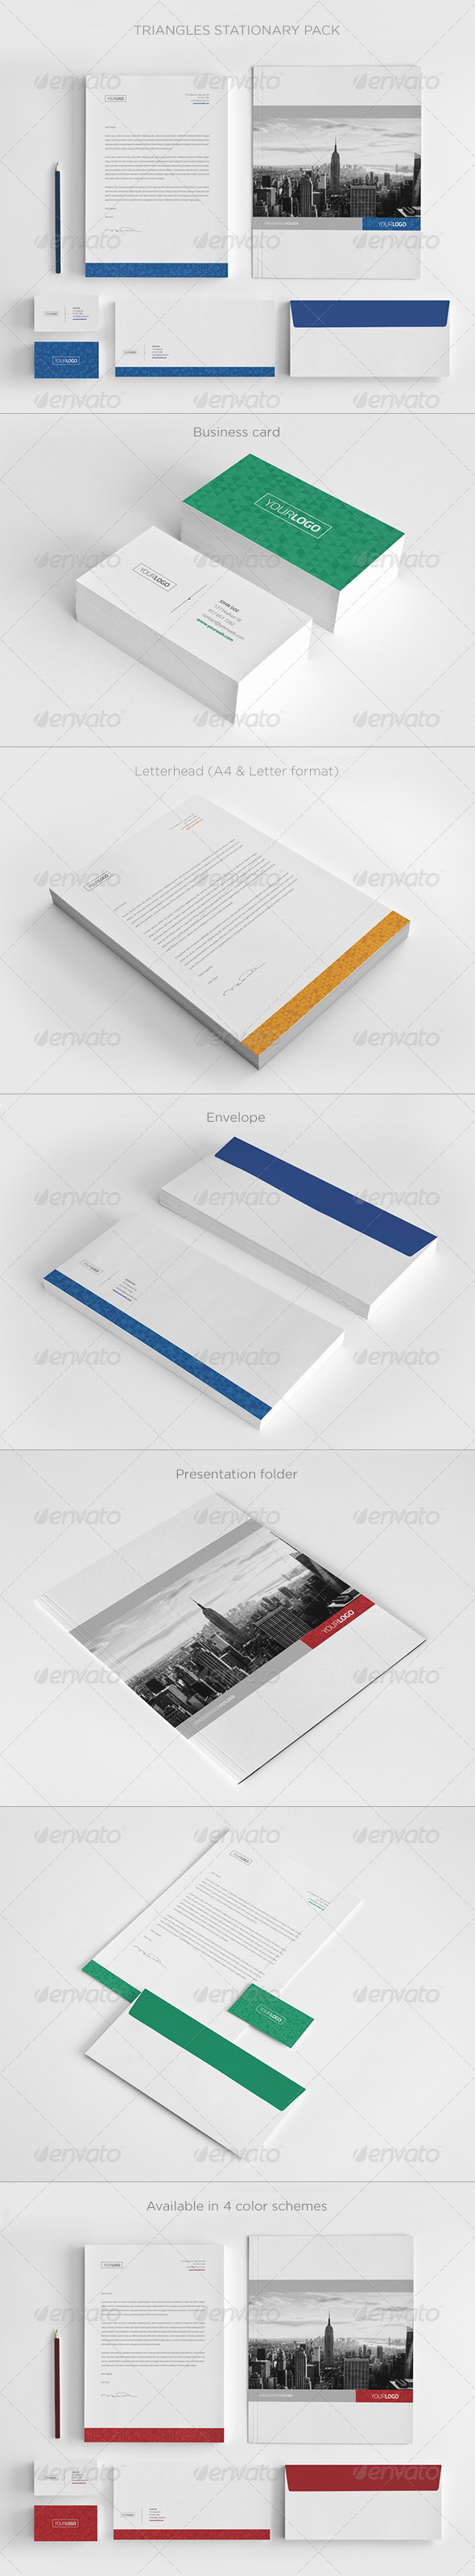 GraphicRiver Real Estate Stationary Pack 6010200